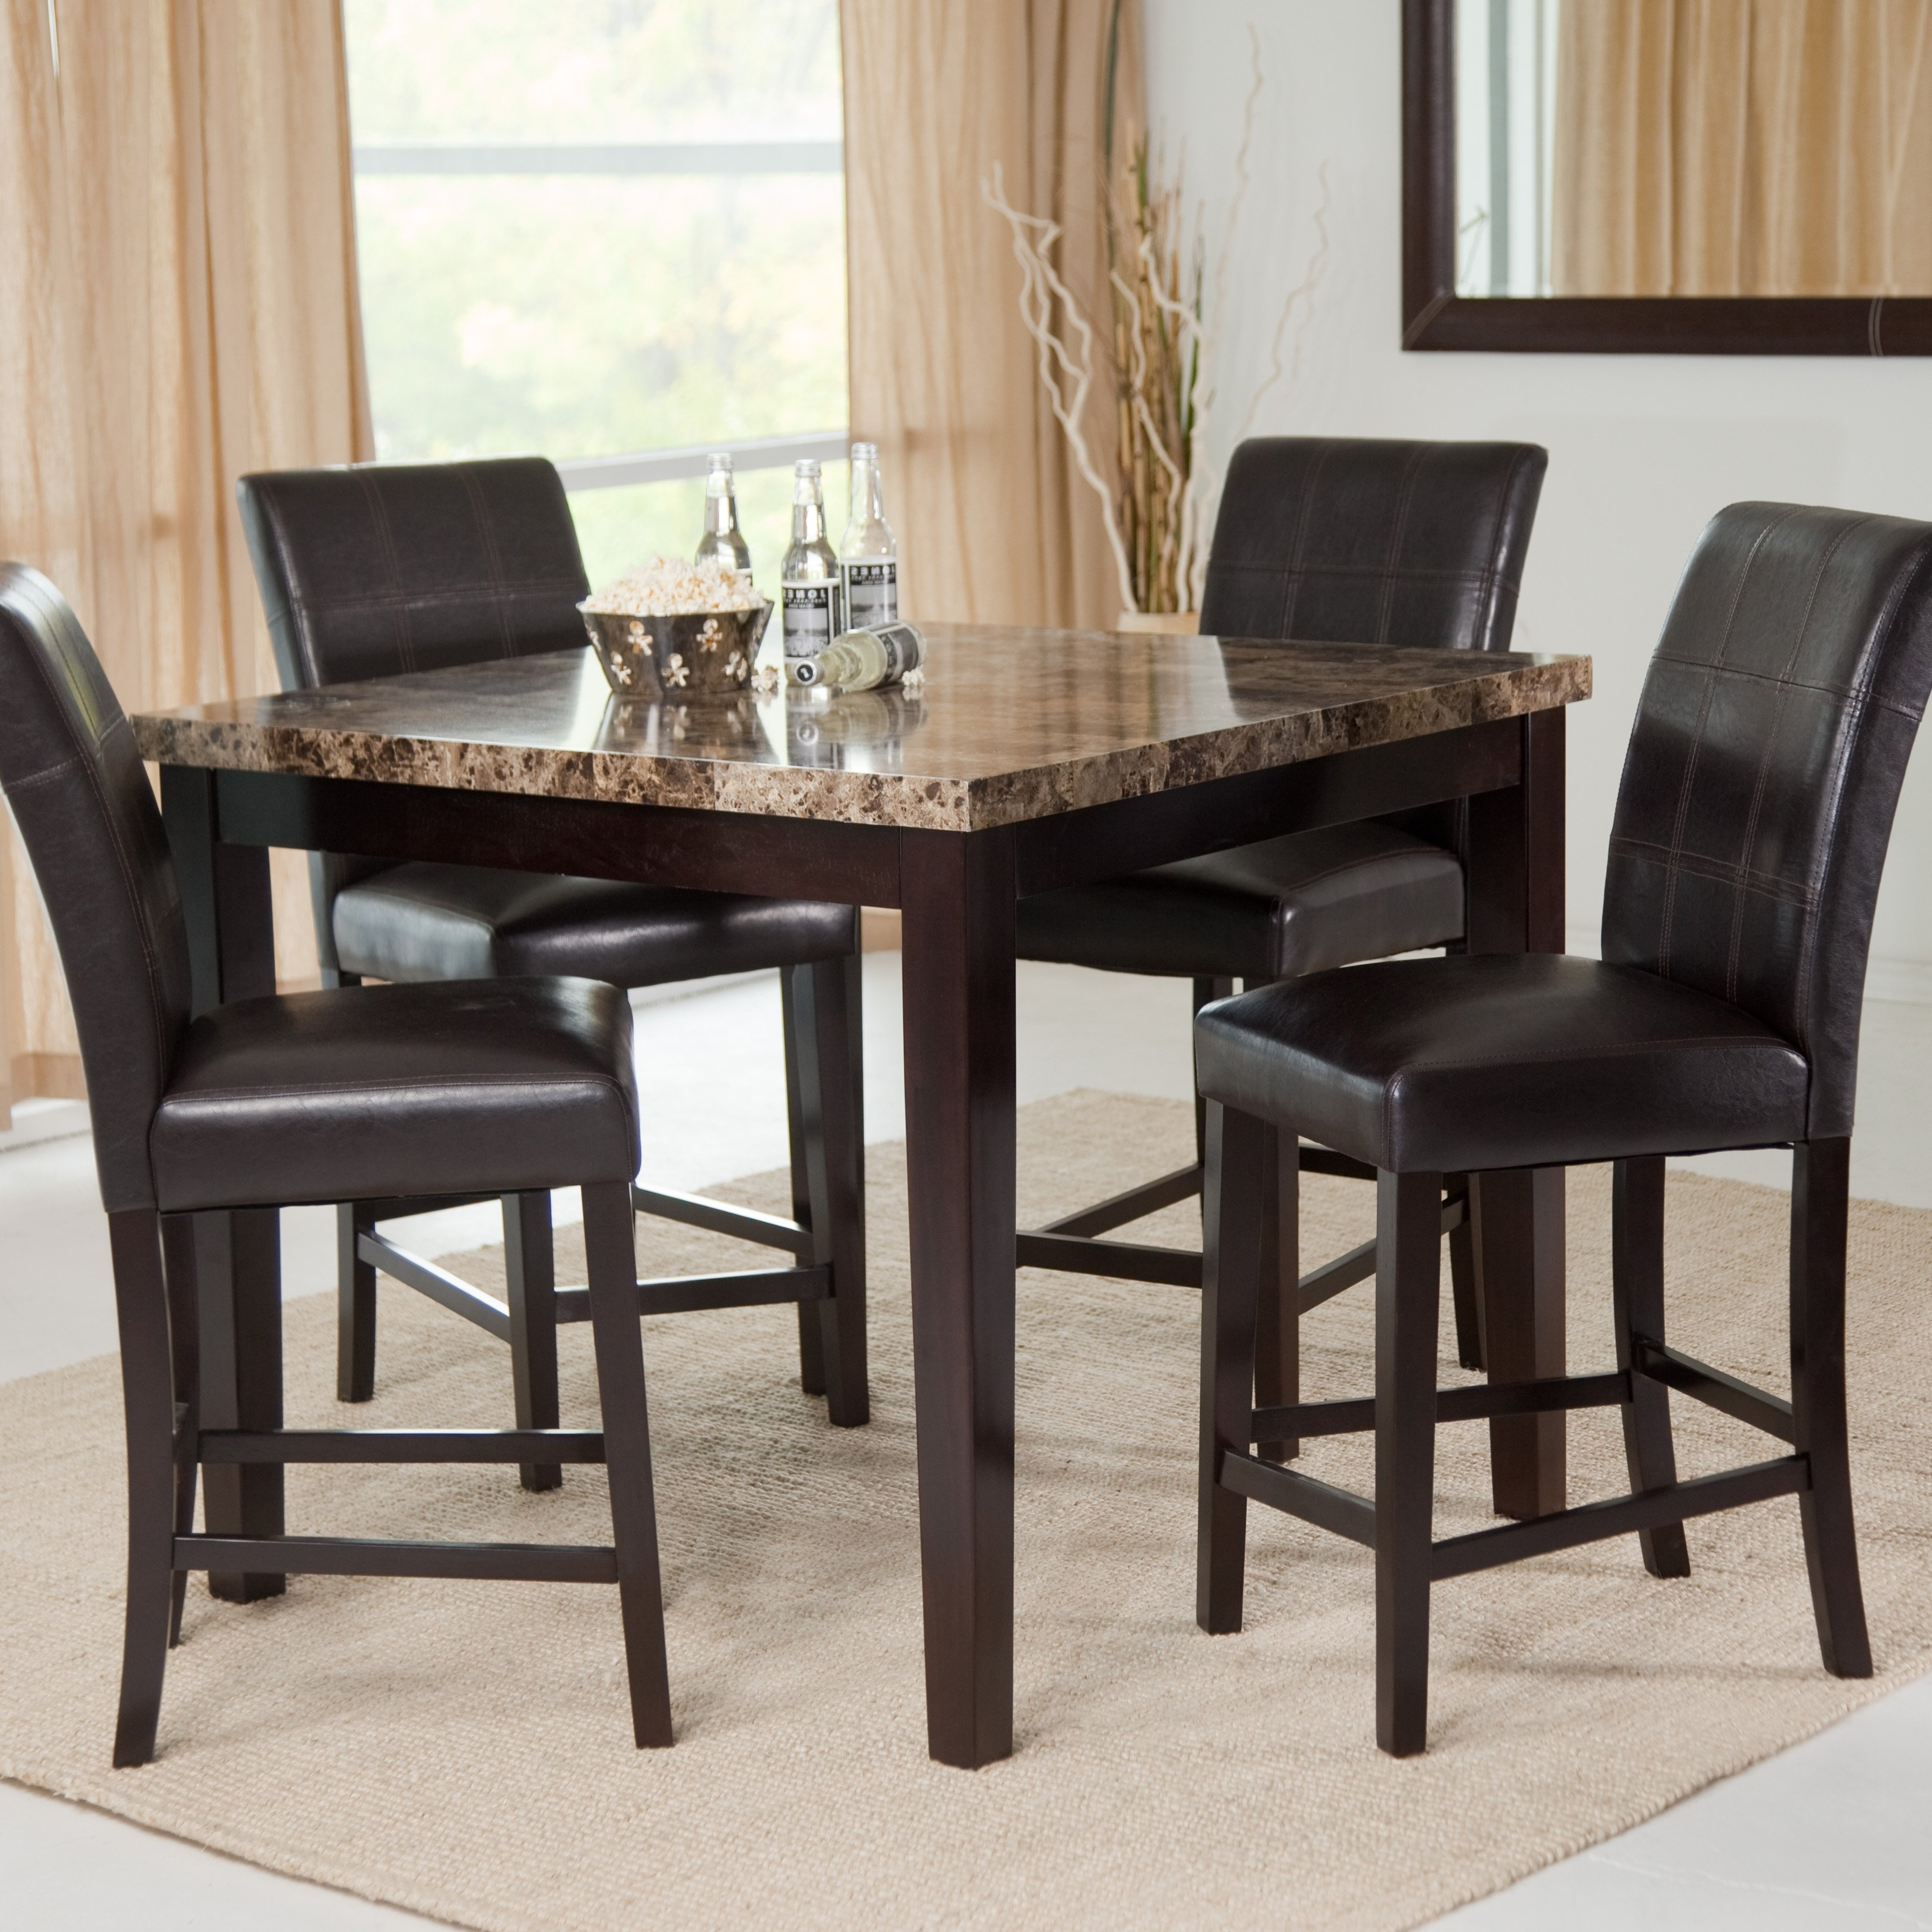 Hayneedle Intended For Palazzo 3 Piece Dining Table Sets (View 4 of 25)